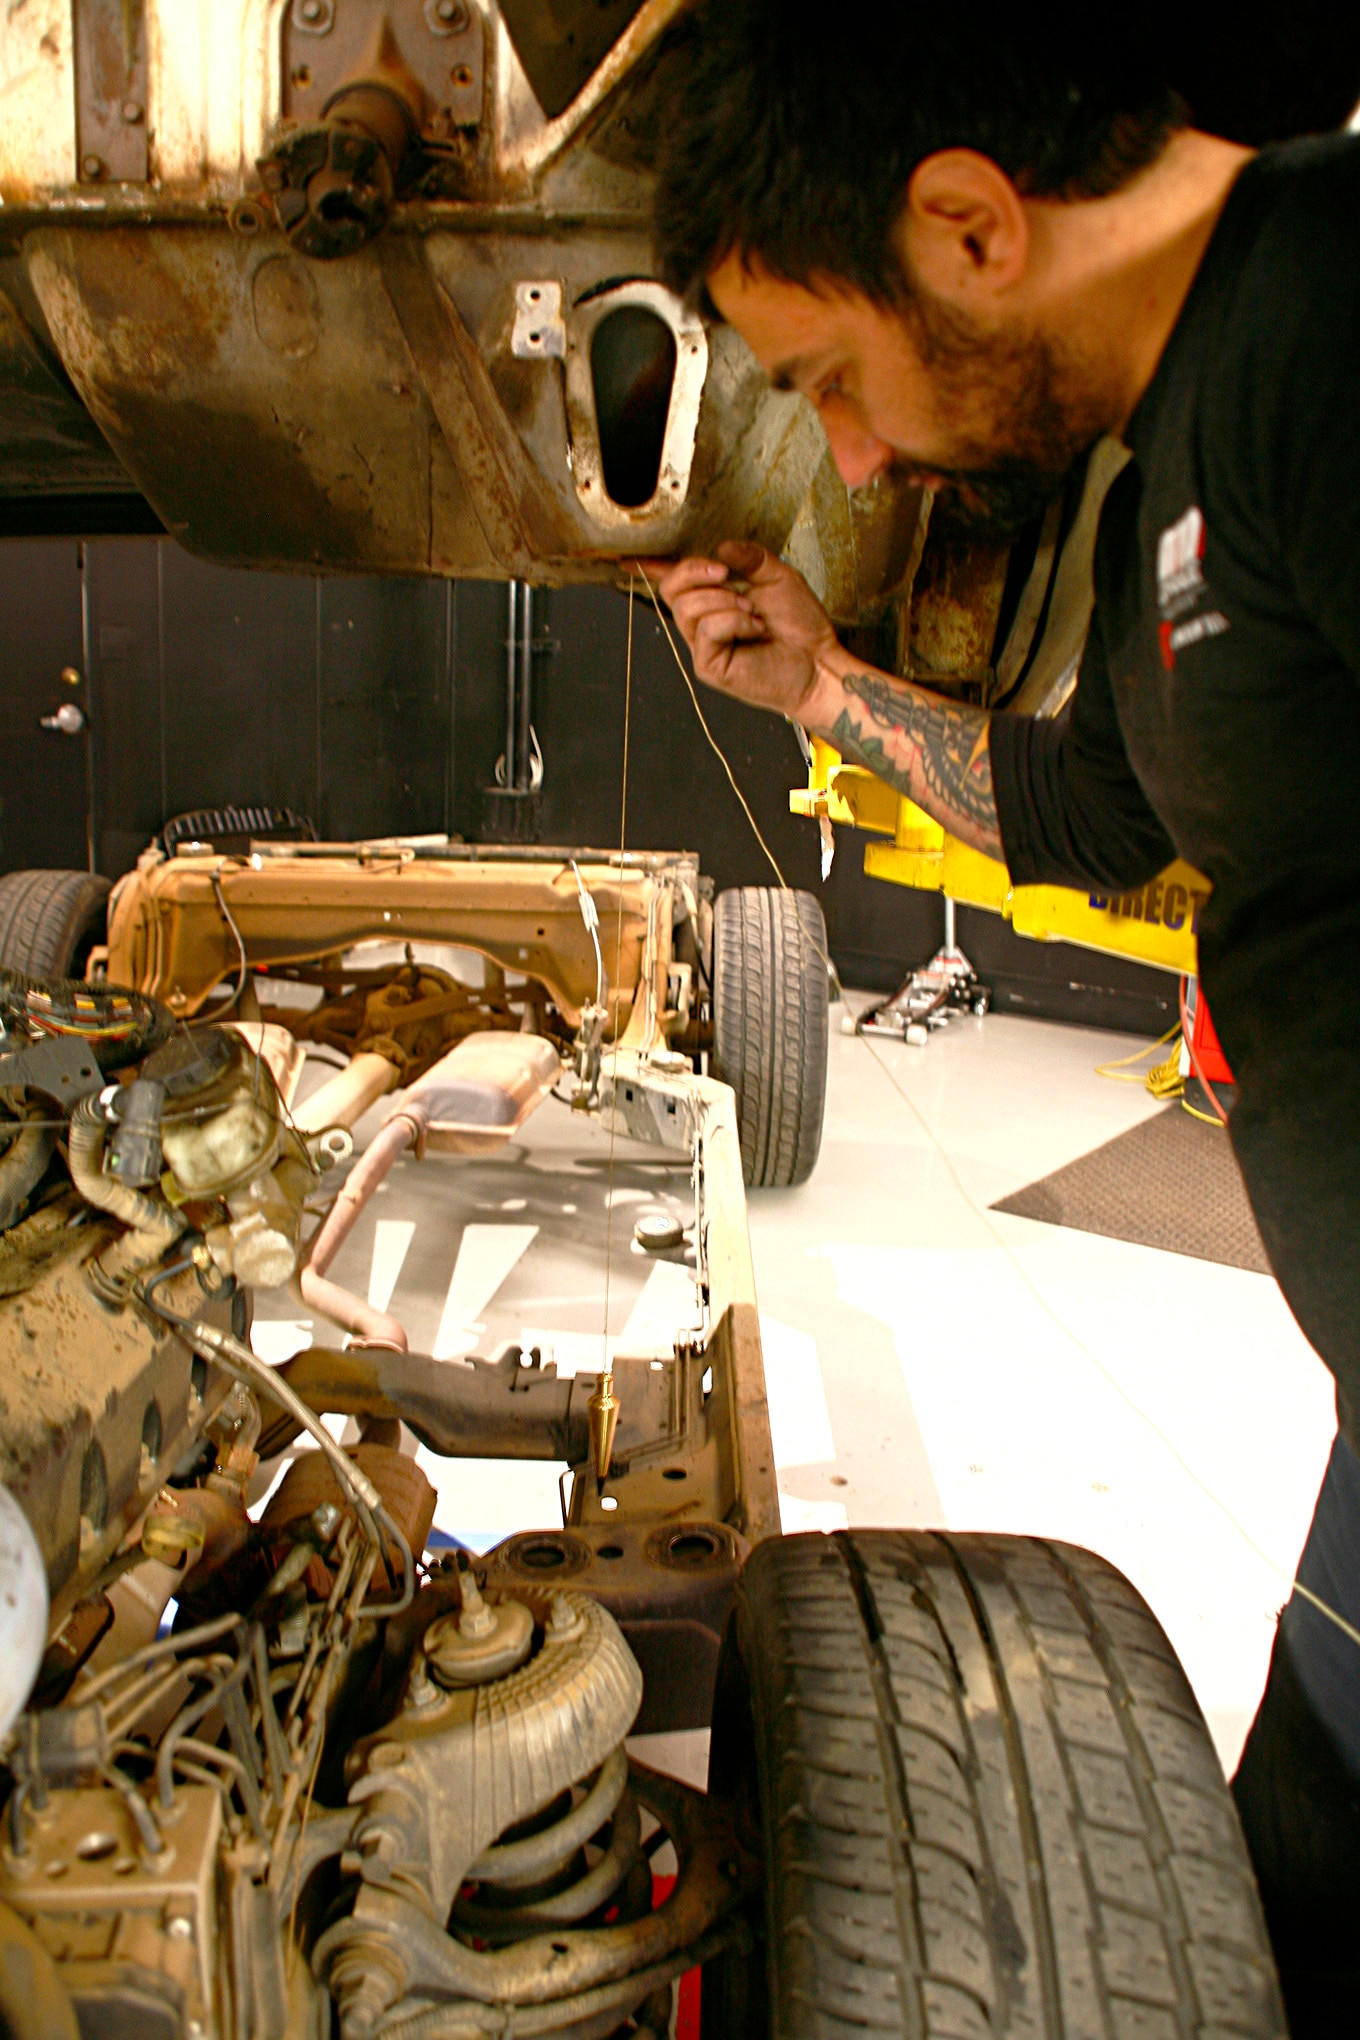 Wiring Harness 2007 Ford Police Car How To Swap A Cop Car Frame Under An F 100 Pickup Hot